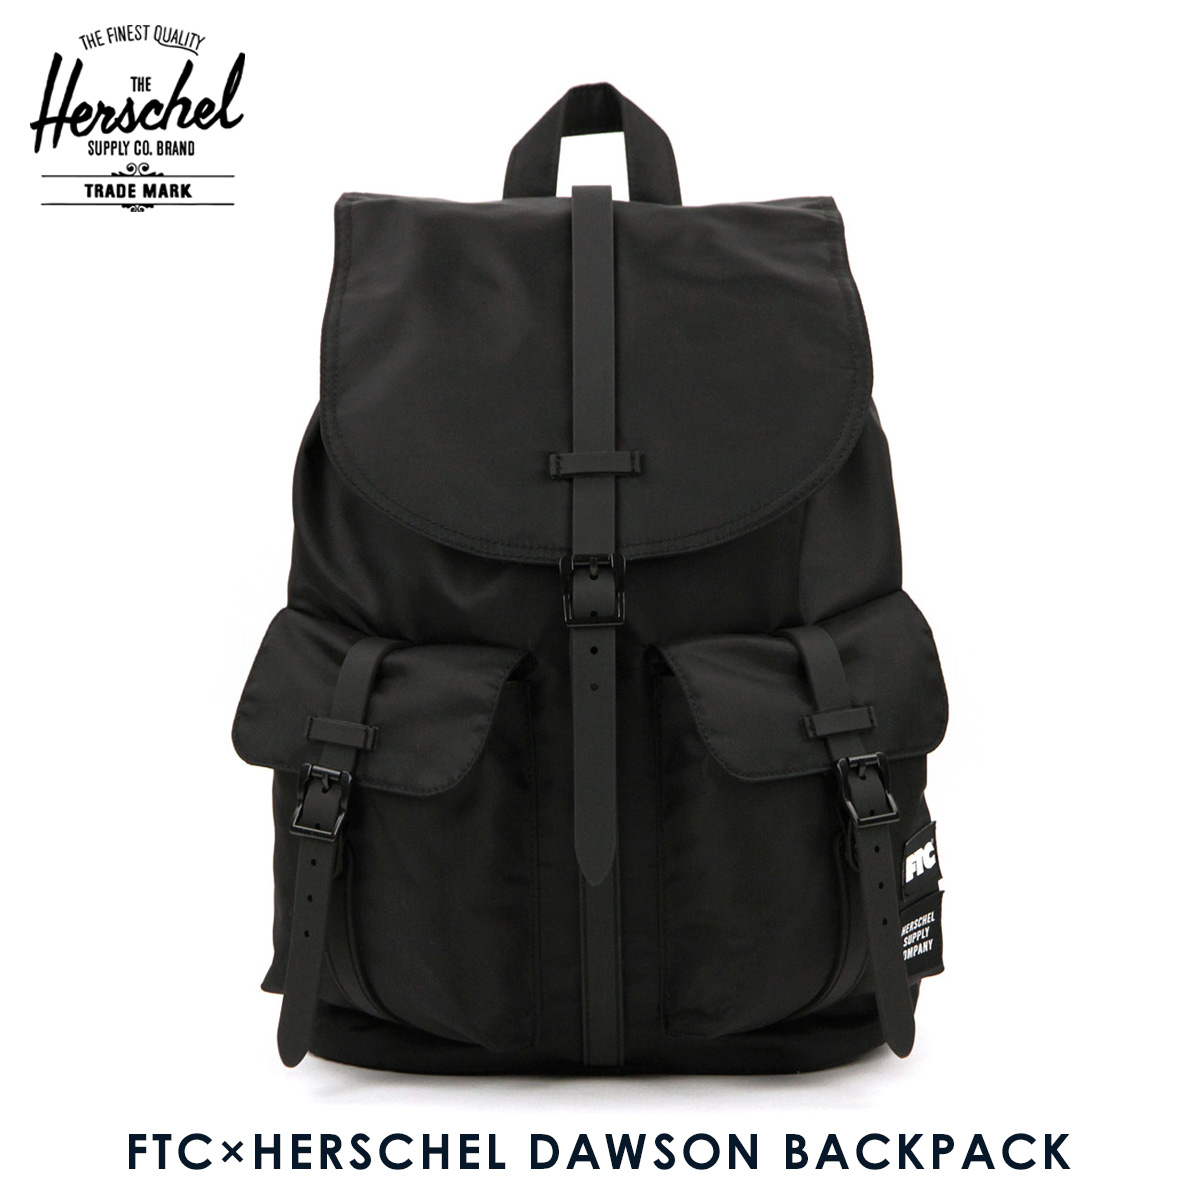 ハーシェル Herschel バッグ バックパック FTC x HERSCHEL DAWSON BACKPACK FTC018HSA01BLACK 20.5L